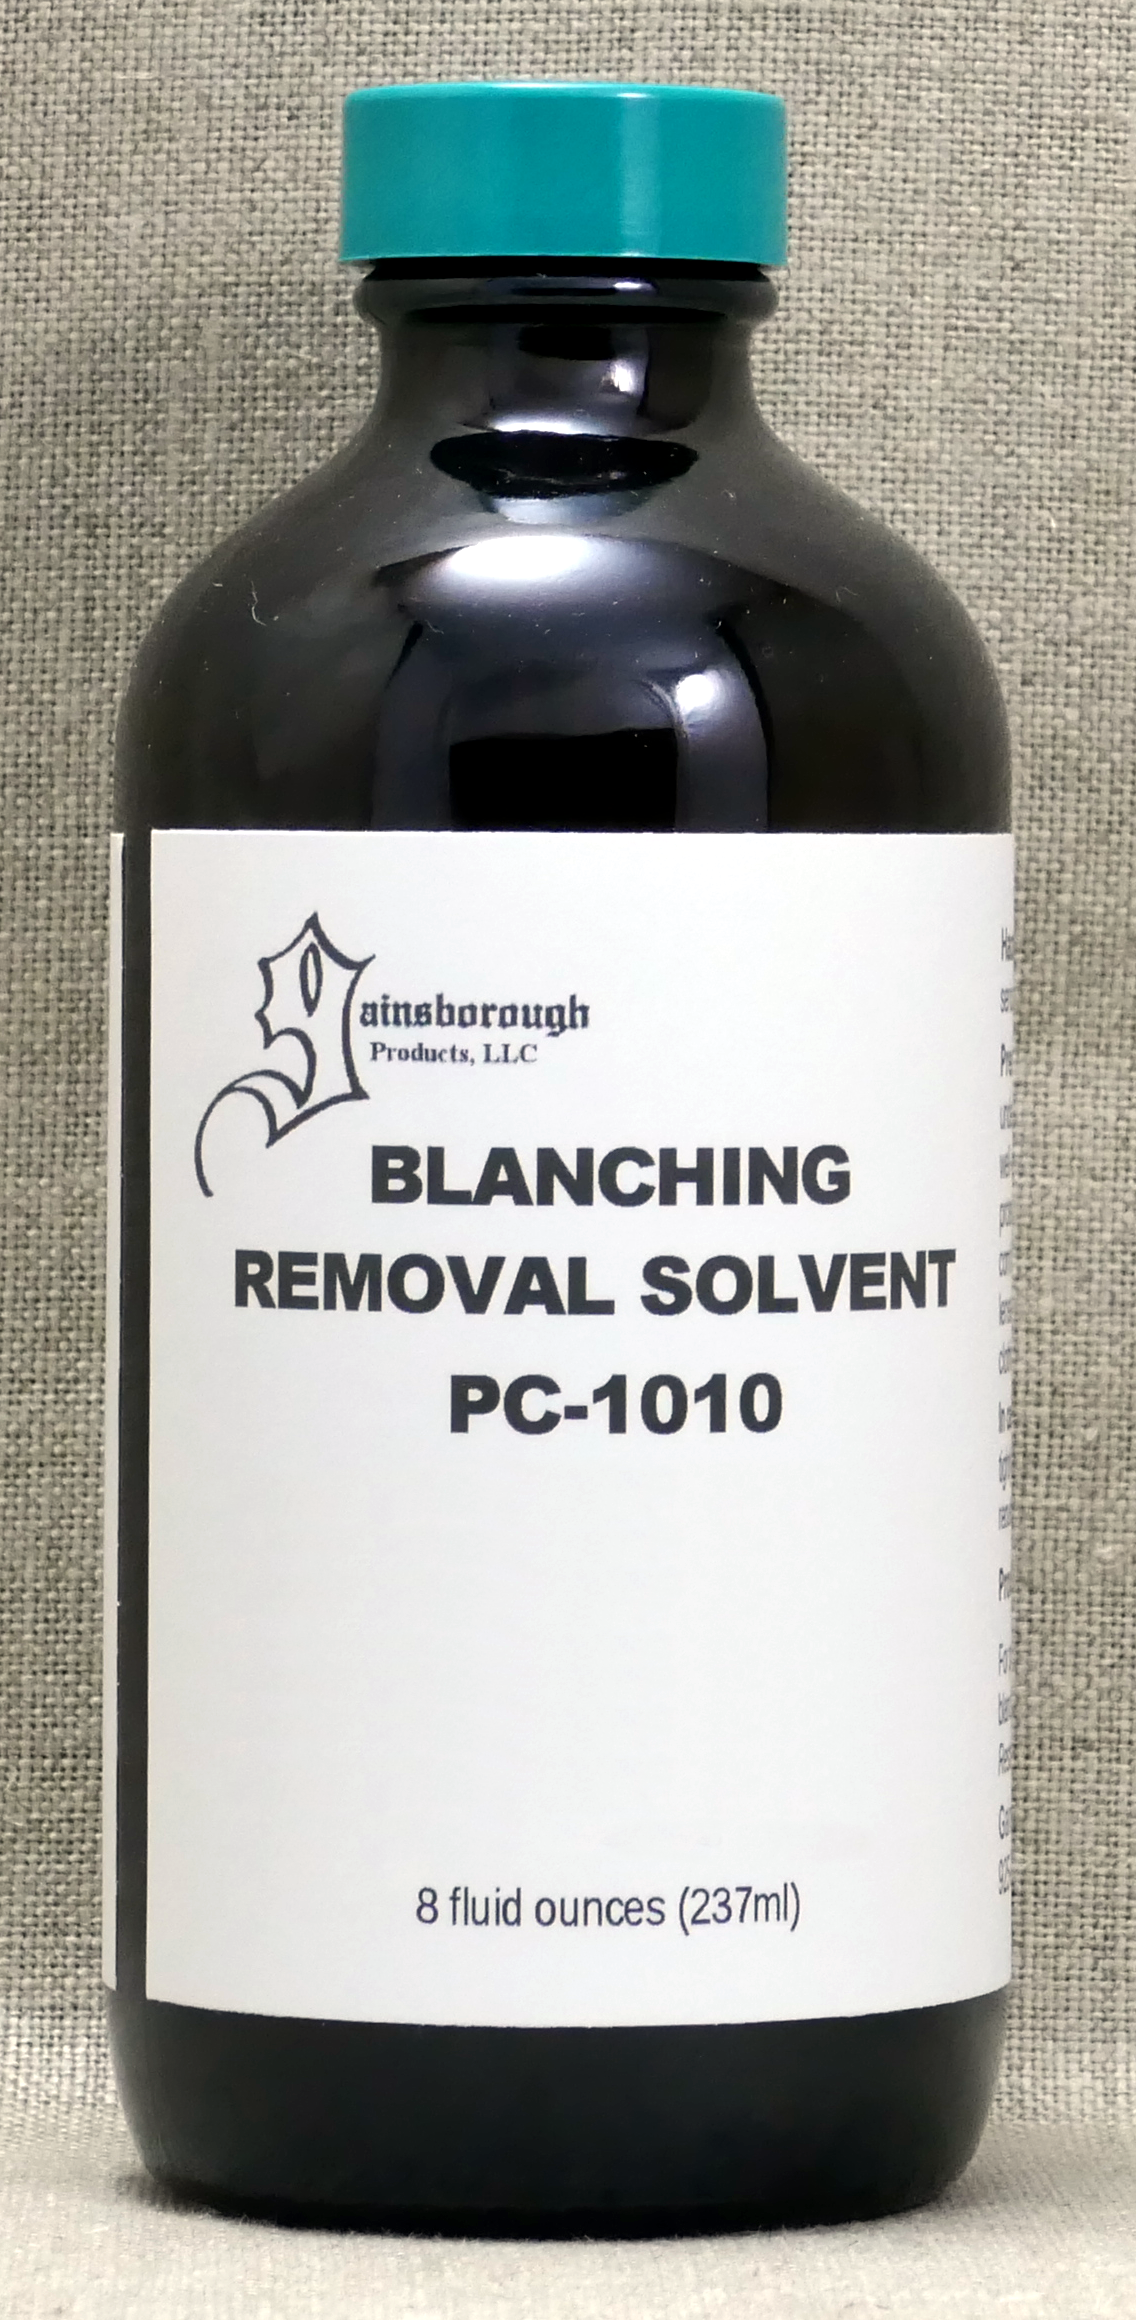 PC-1010 Blanching Removal Solvent